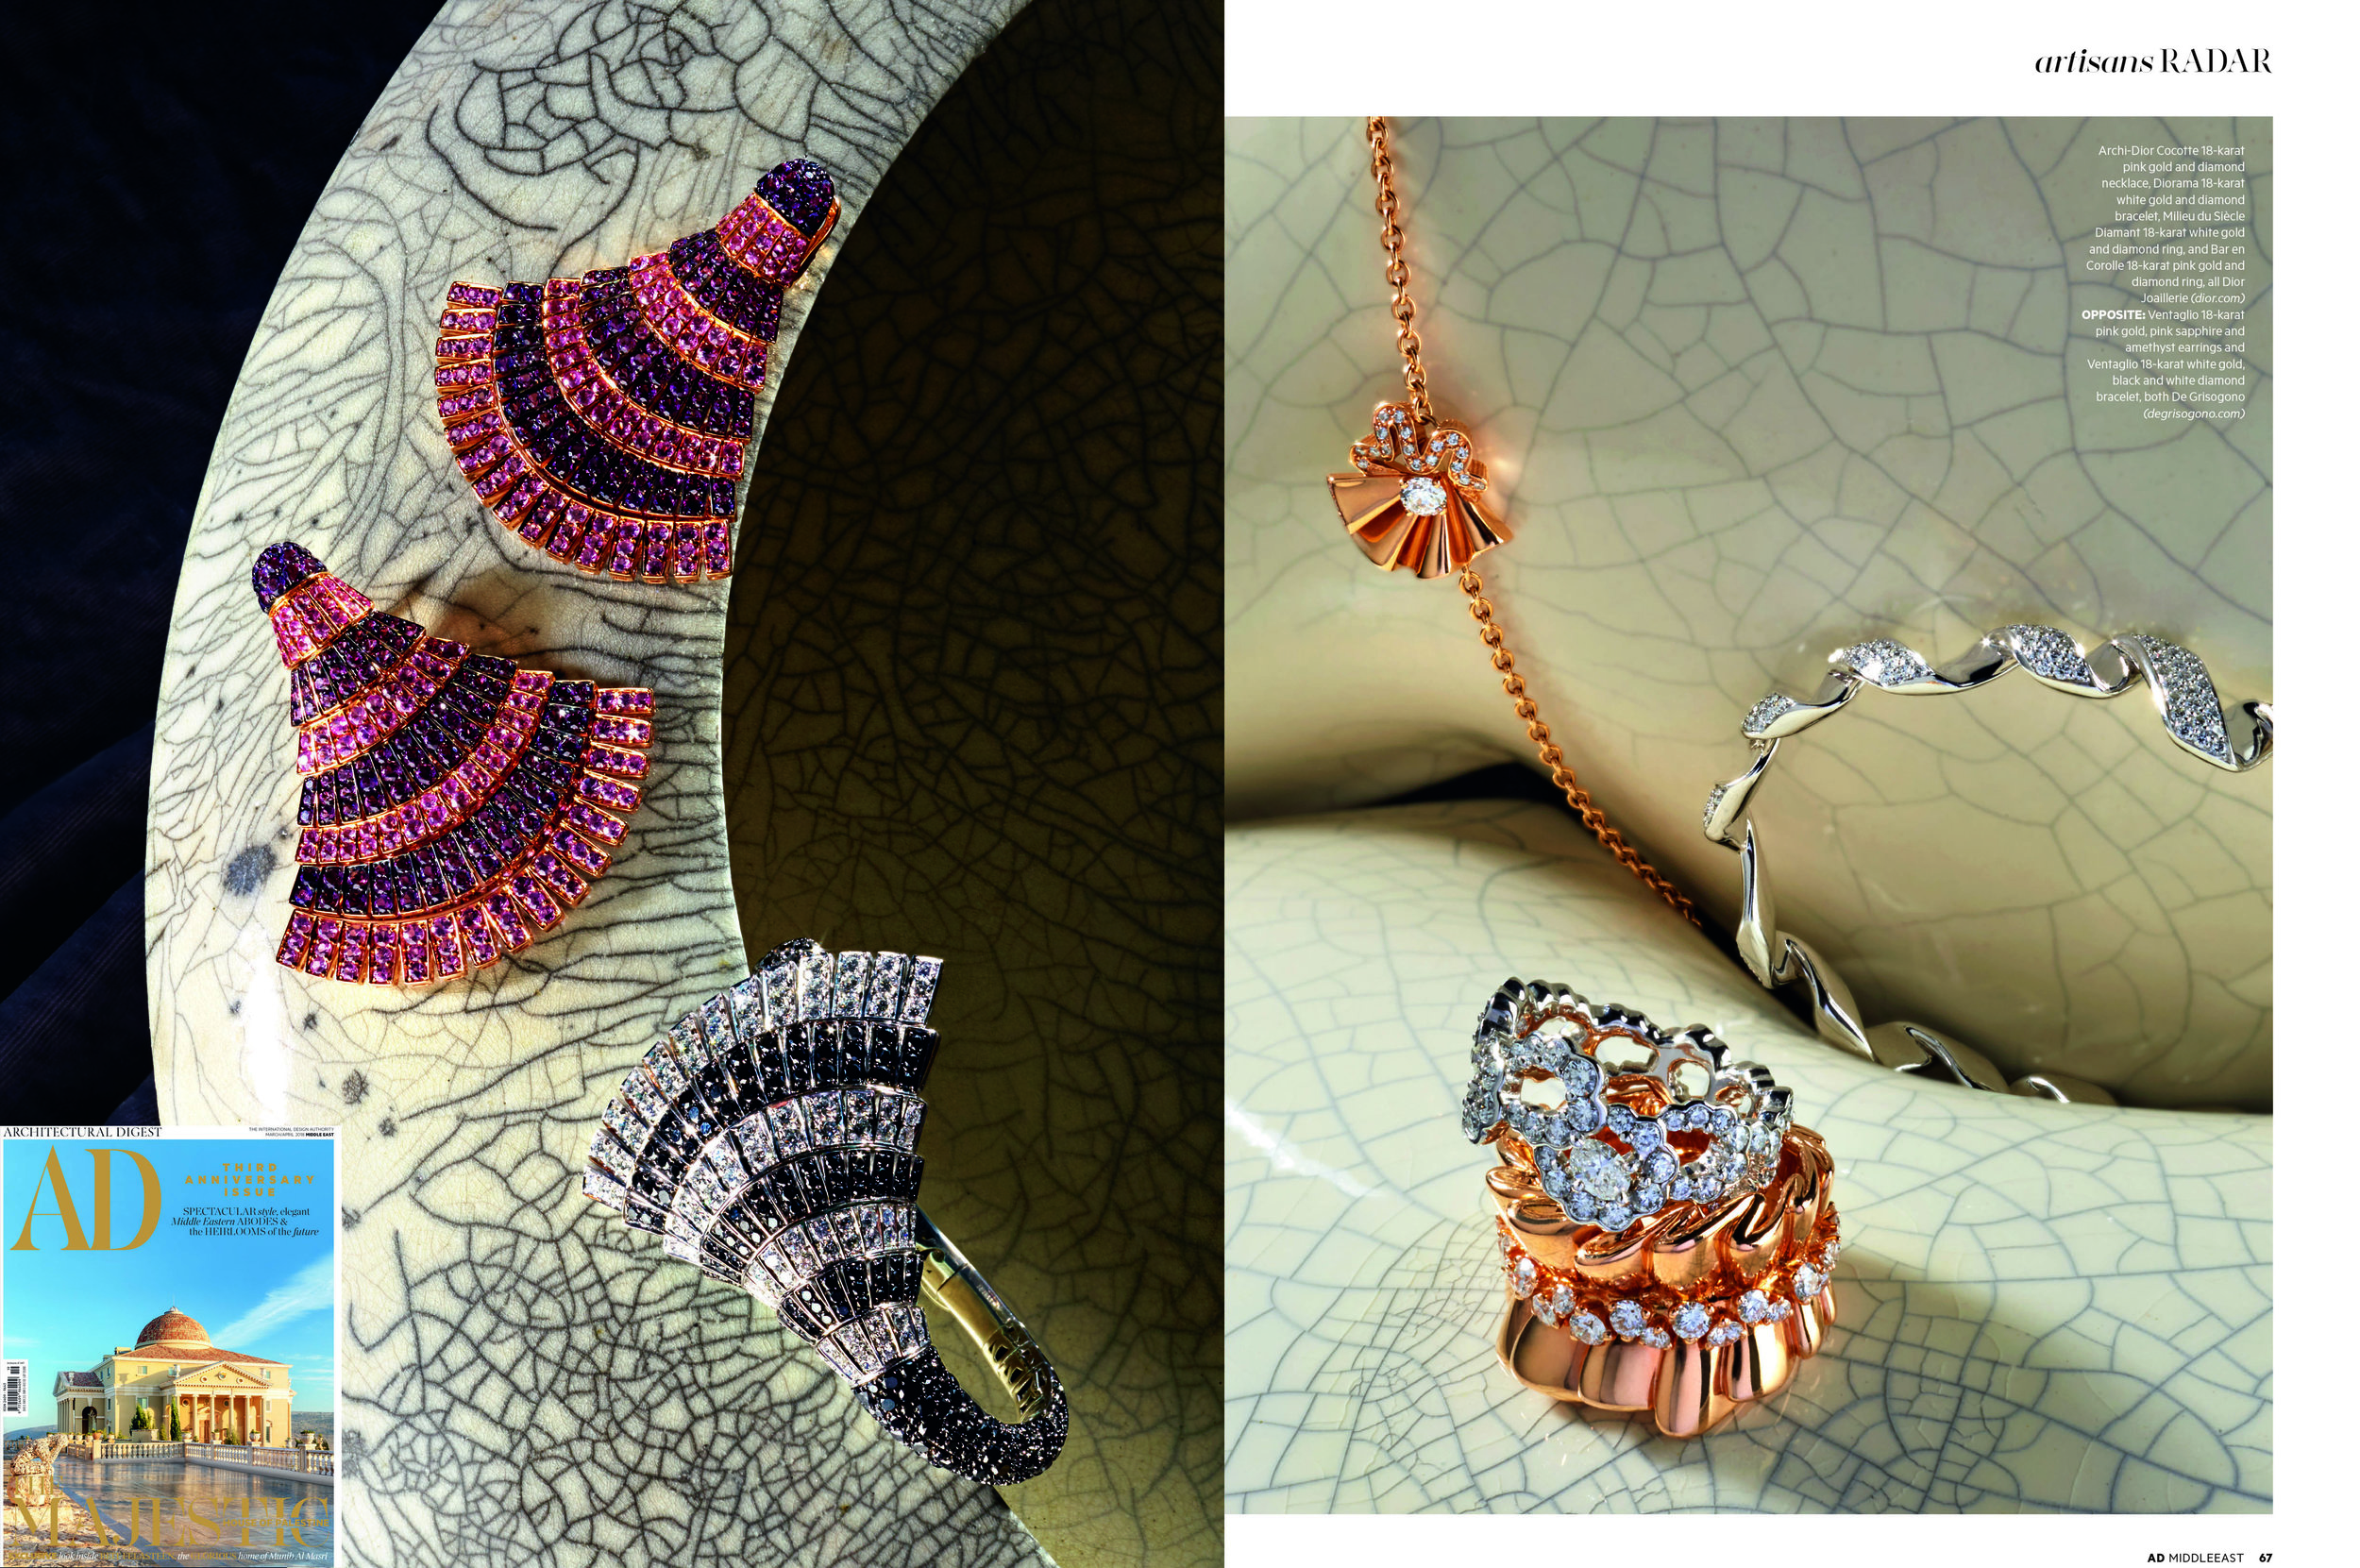 As featured in AD Middle East 3rd anniversary edition with high jewelery from Dior Joaillerie  (dior.com)  and De Grisogono  (degrisogono.com)